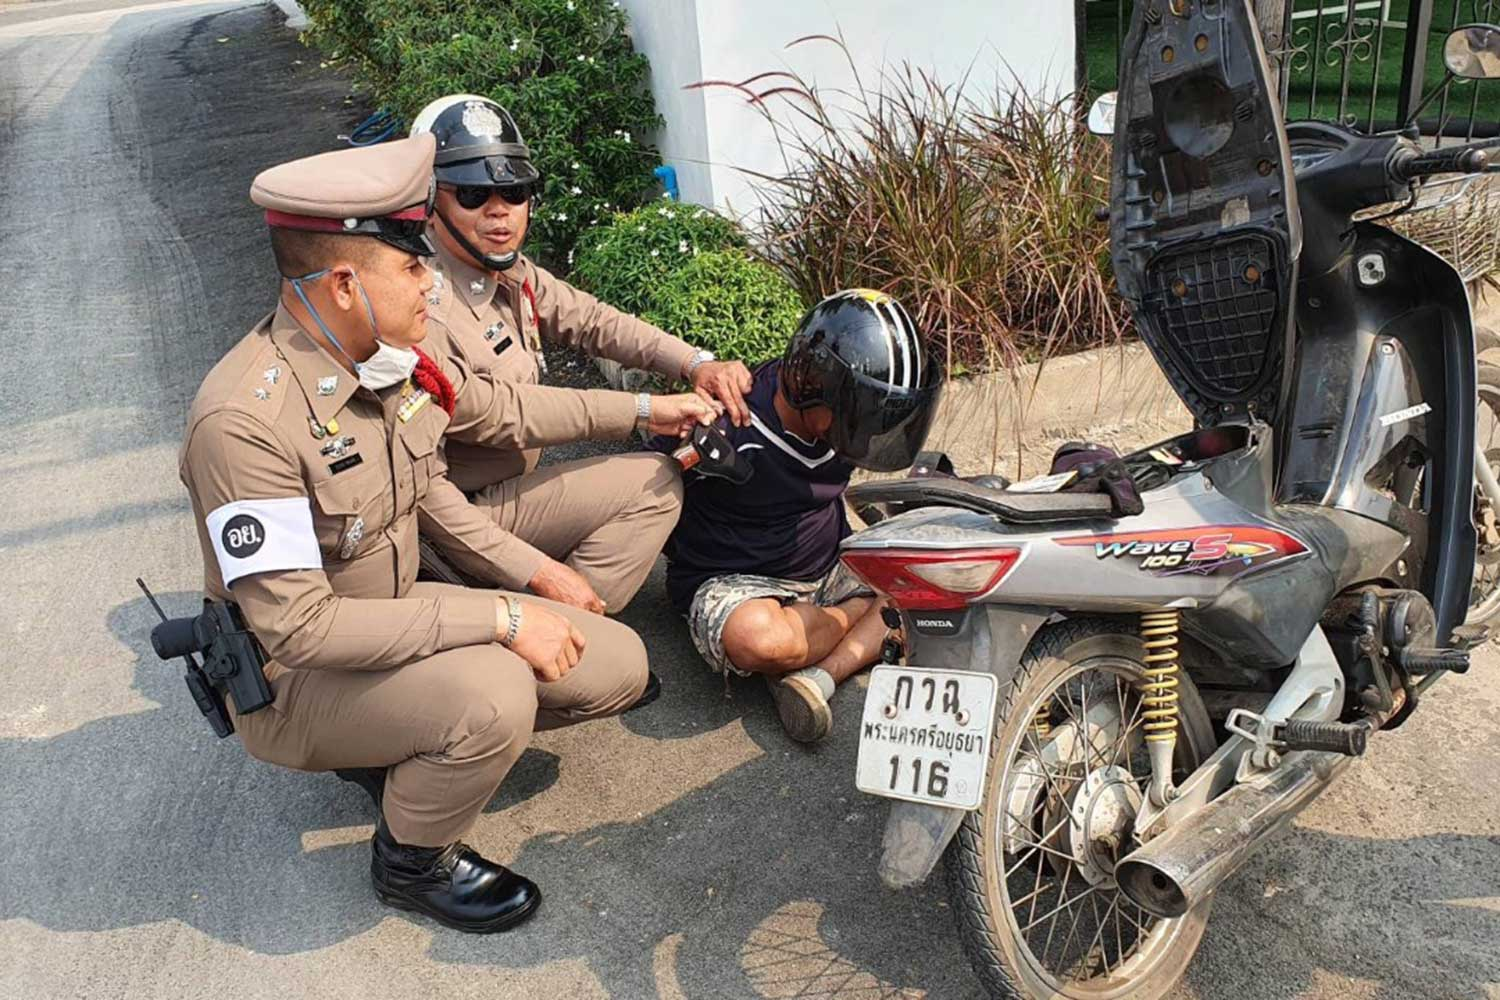 Police hold Somkhid Ruennangyaem after finding an registered pistol and ammunition in his possession, in Phra Nakhon Si Ayutthaya district of Ayutthaya province on Tuesday. He allegedly confessed he planned to shoot his wife and her lover at a shopping mall. (Photo  via Sunthorn Pongpao)